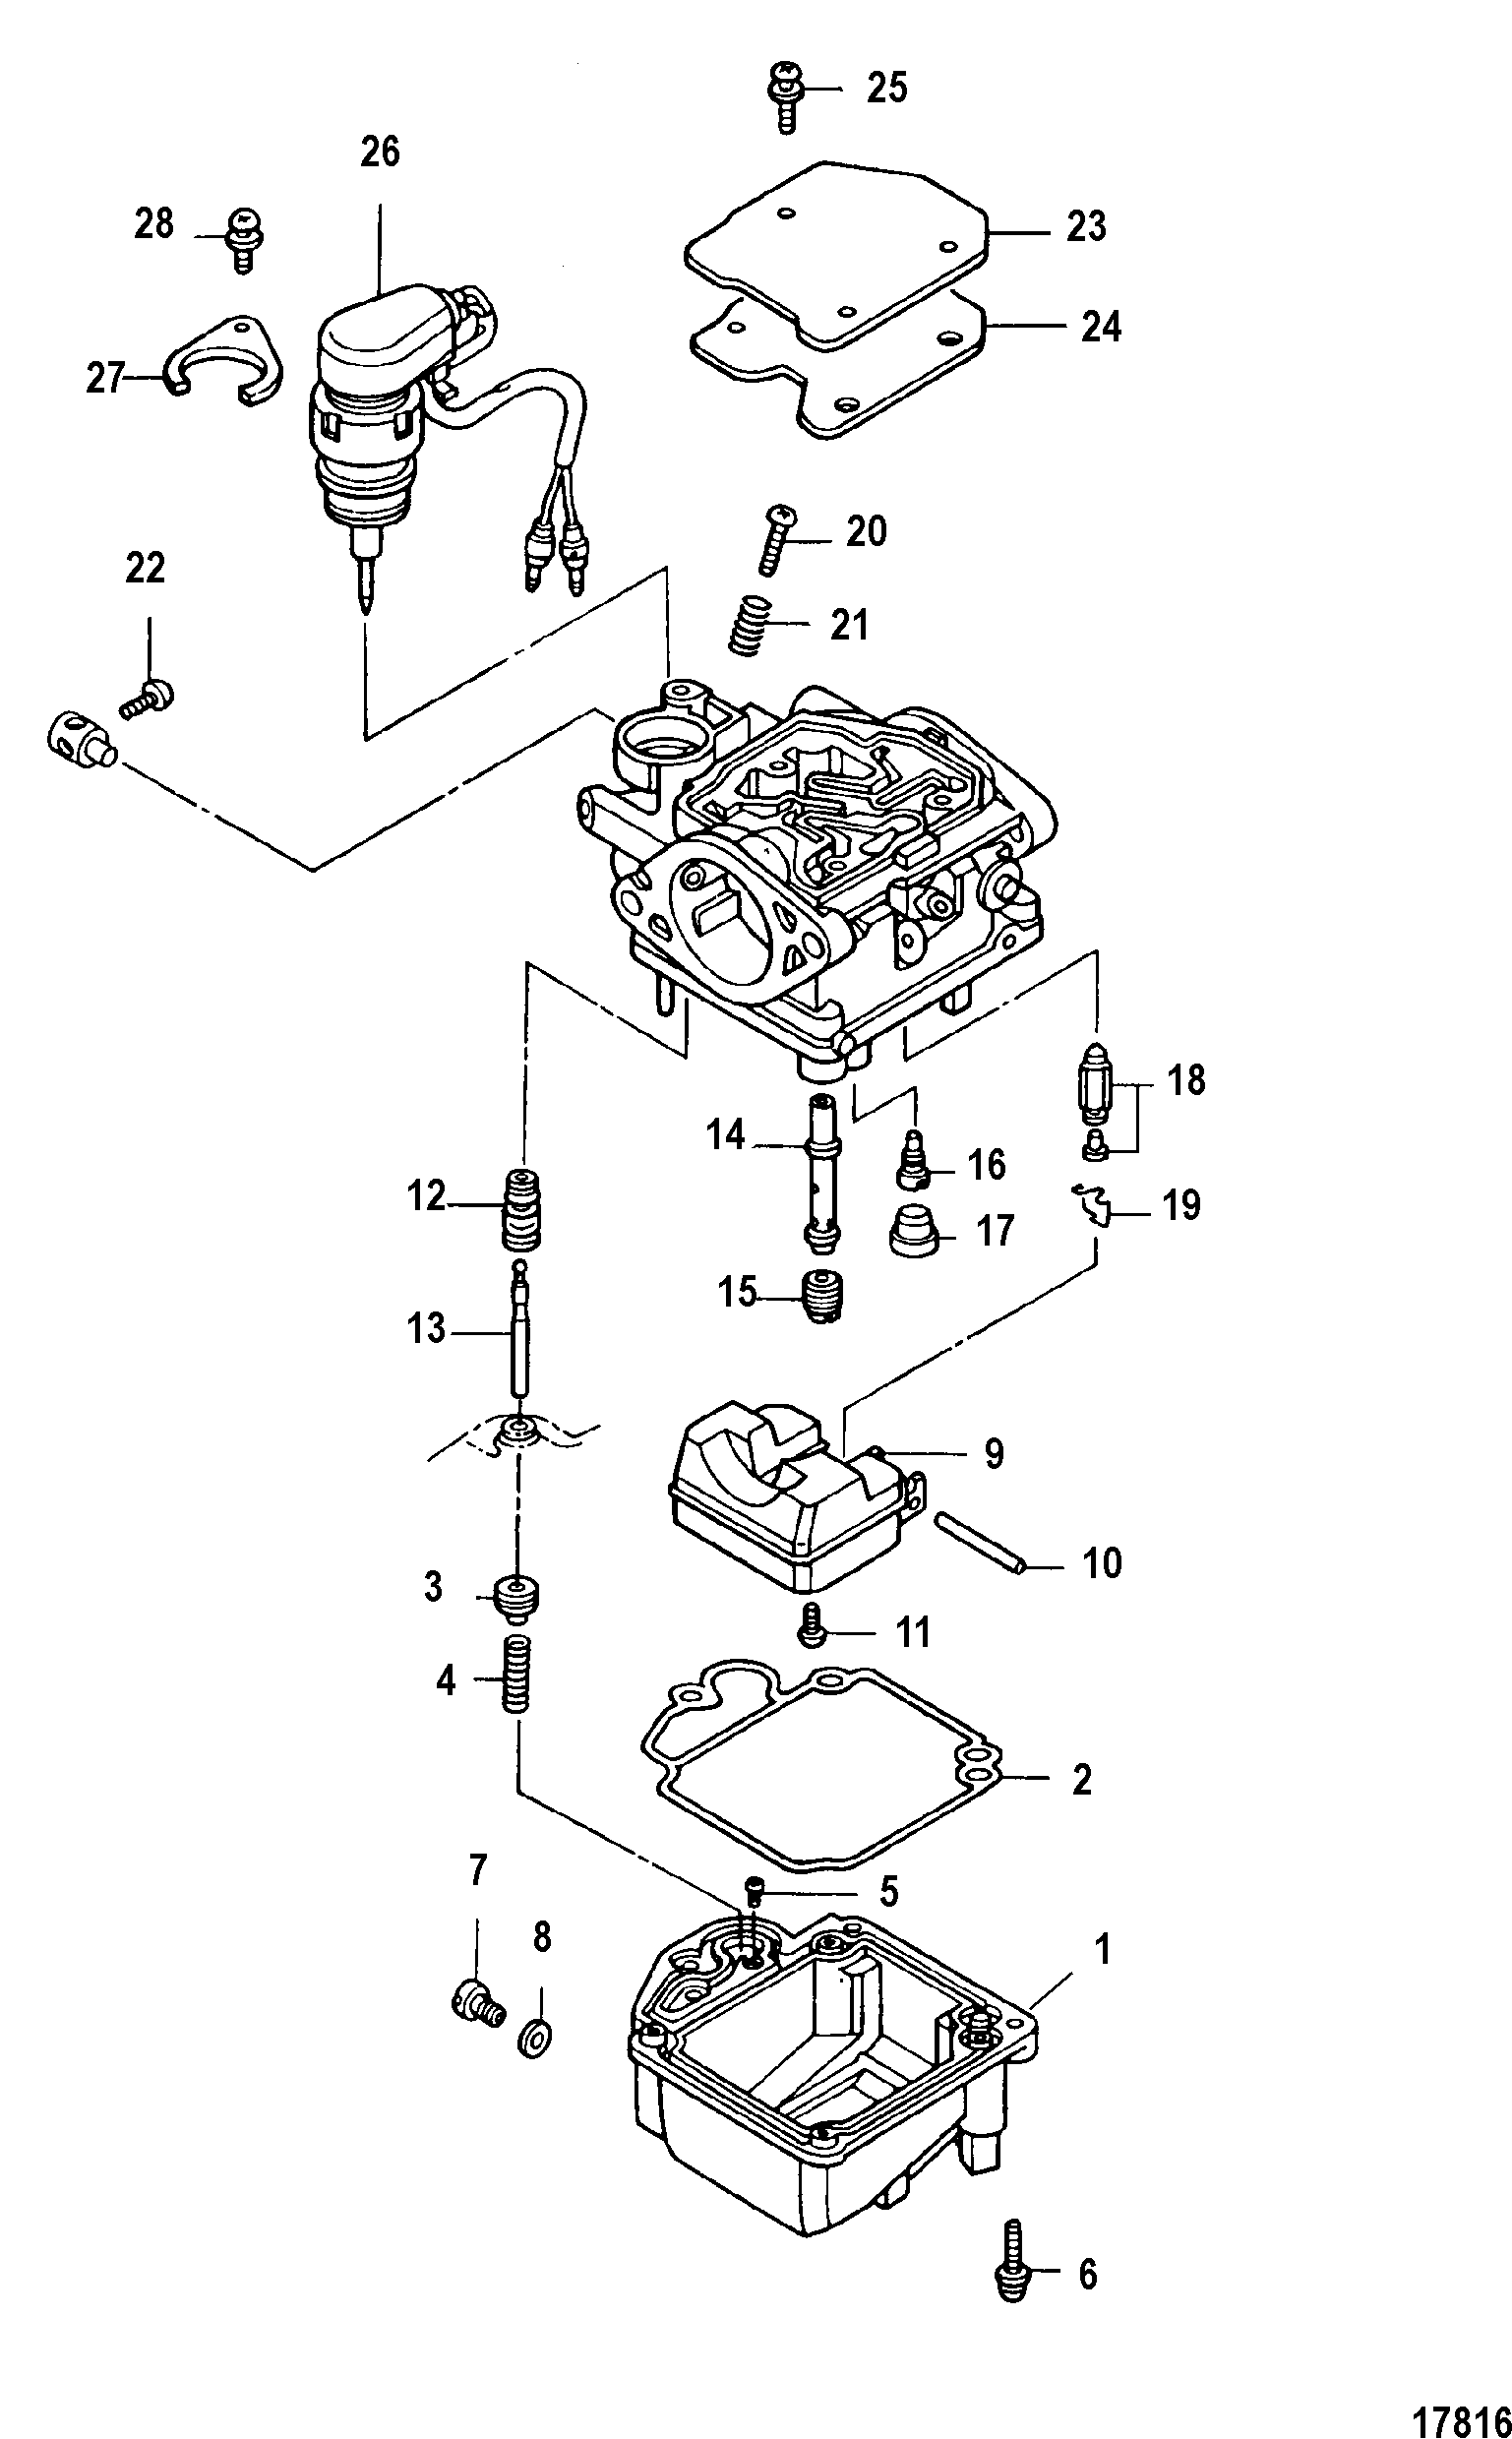 2 cycle carburetor parts diagram 2 free engine image for user manual